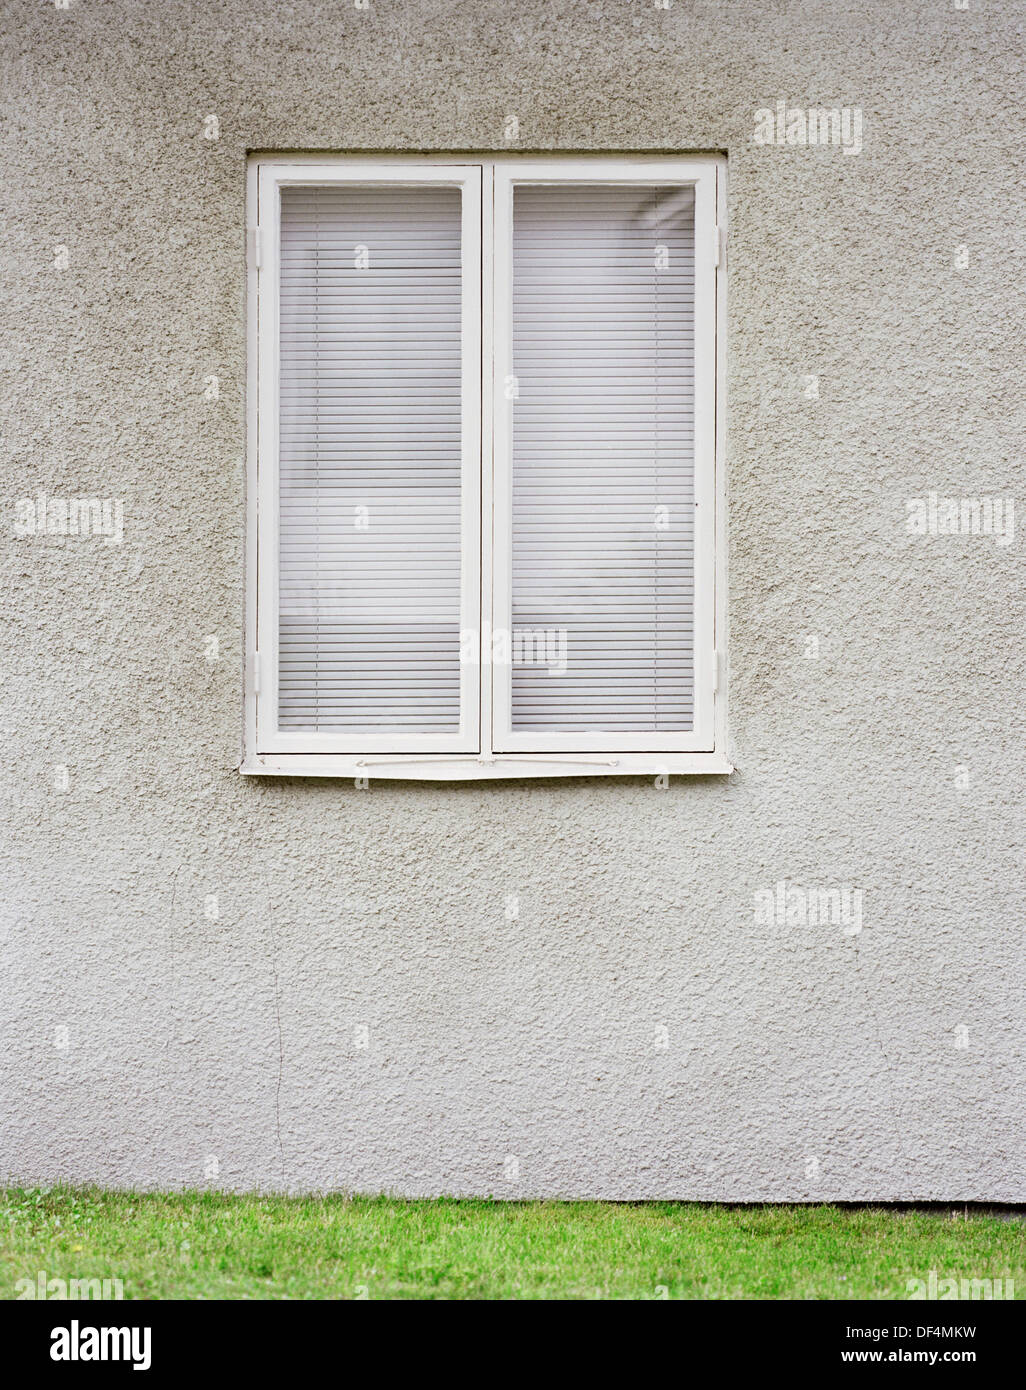 Exterior Of Double Window With White Venetian Blinds On Gray Wall Stock Photo Royalty Free